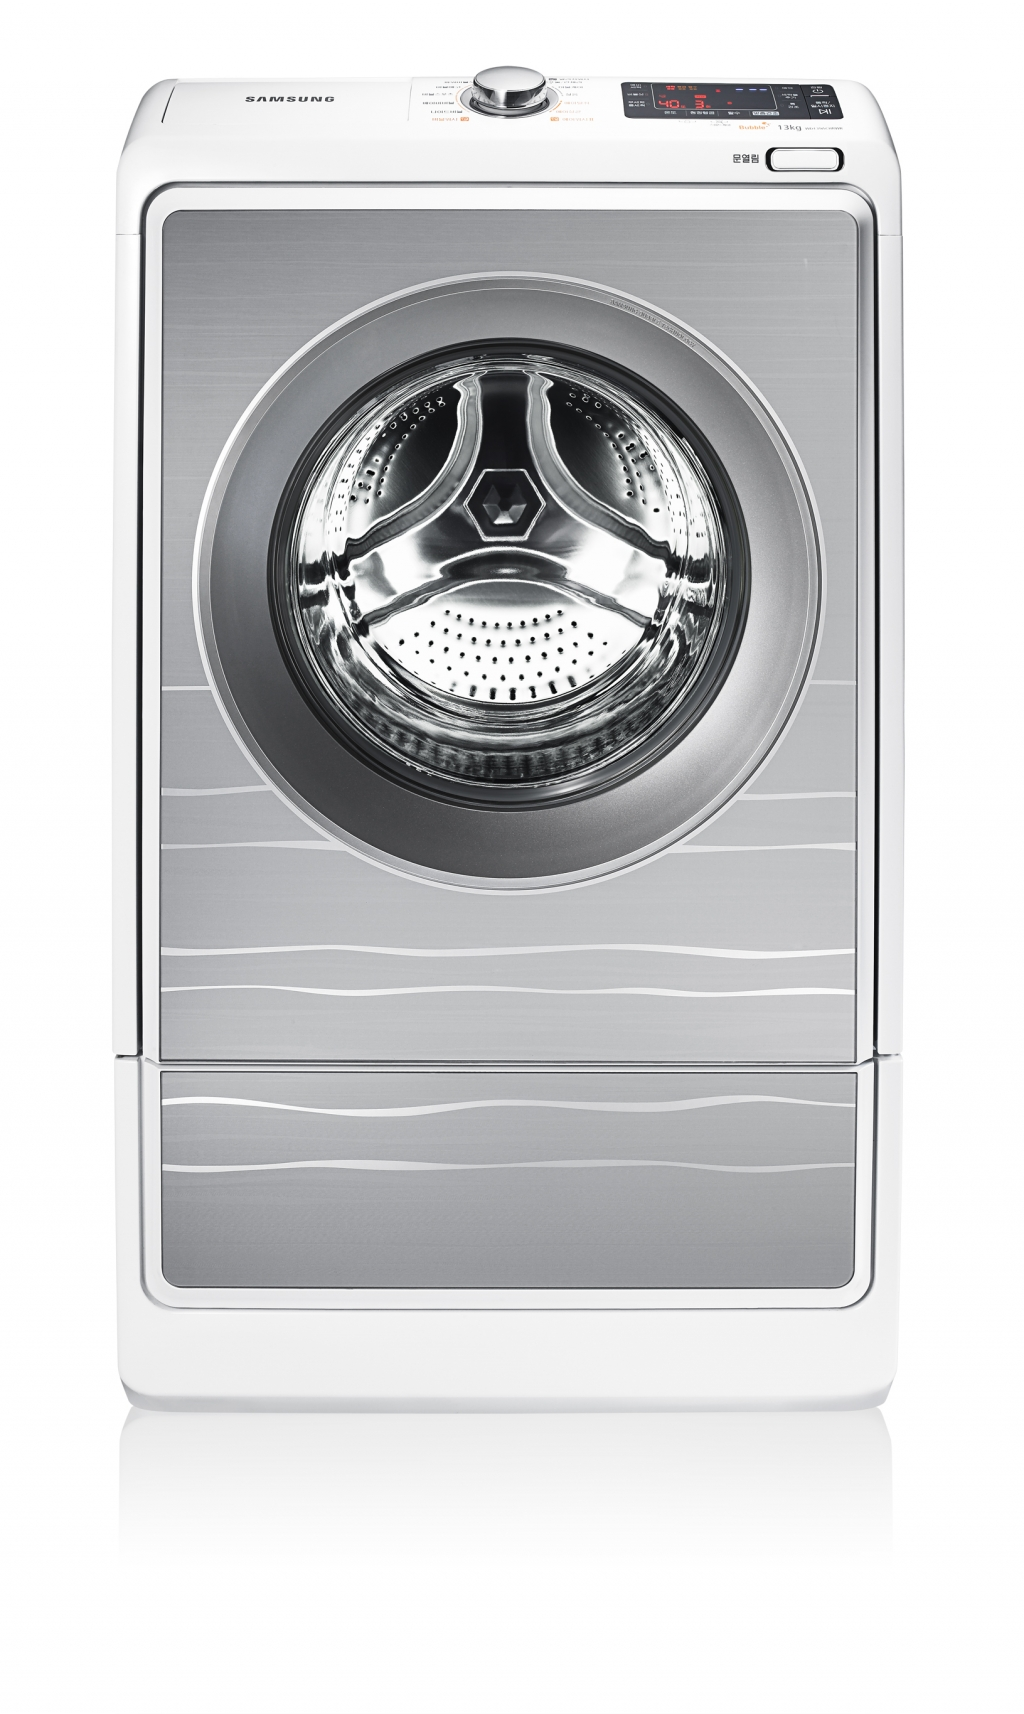 Samsung Introduces New Metallic Bubble 2 Drum Washing Machine